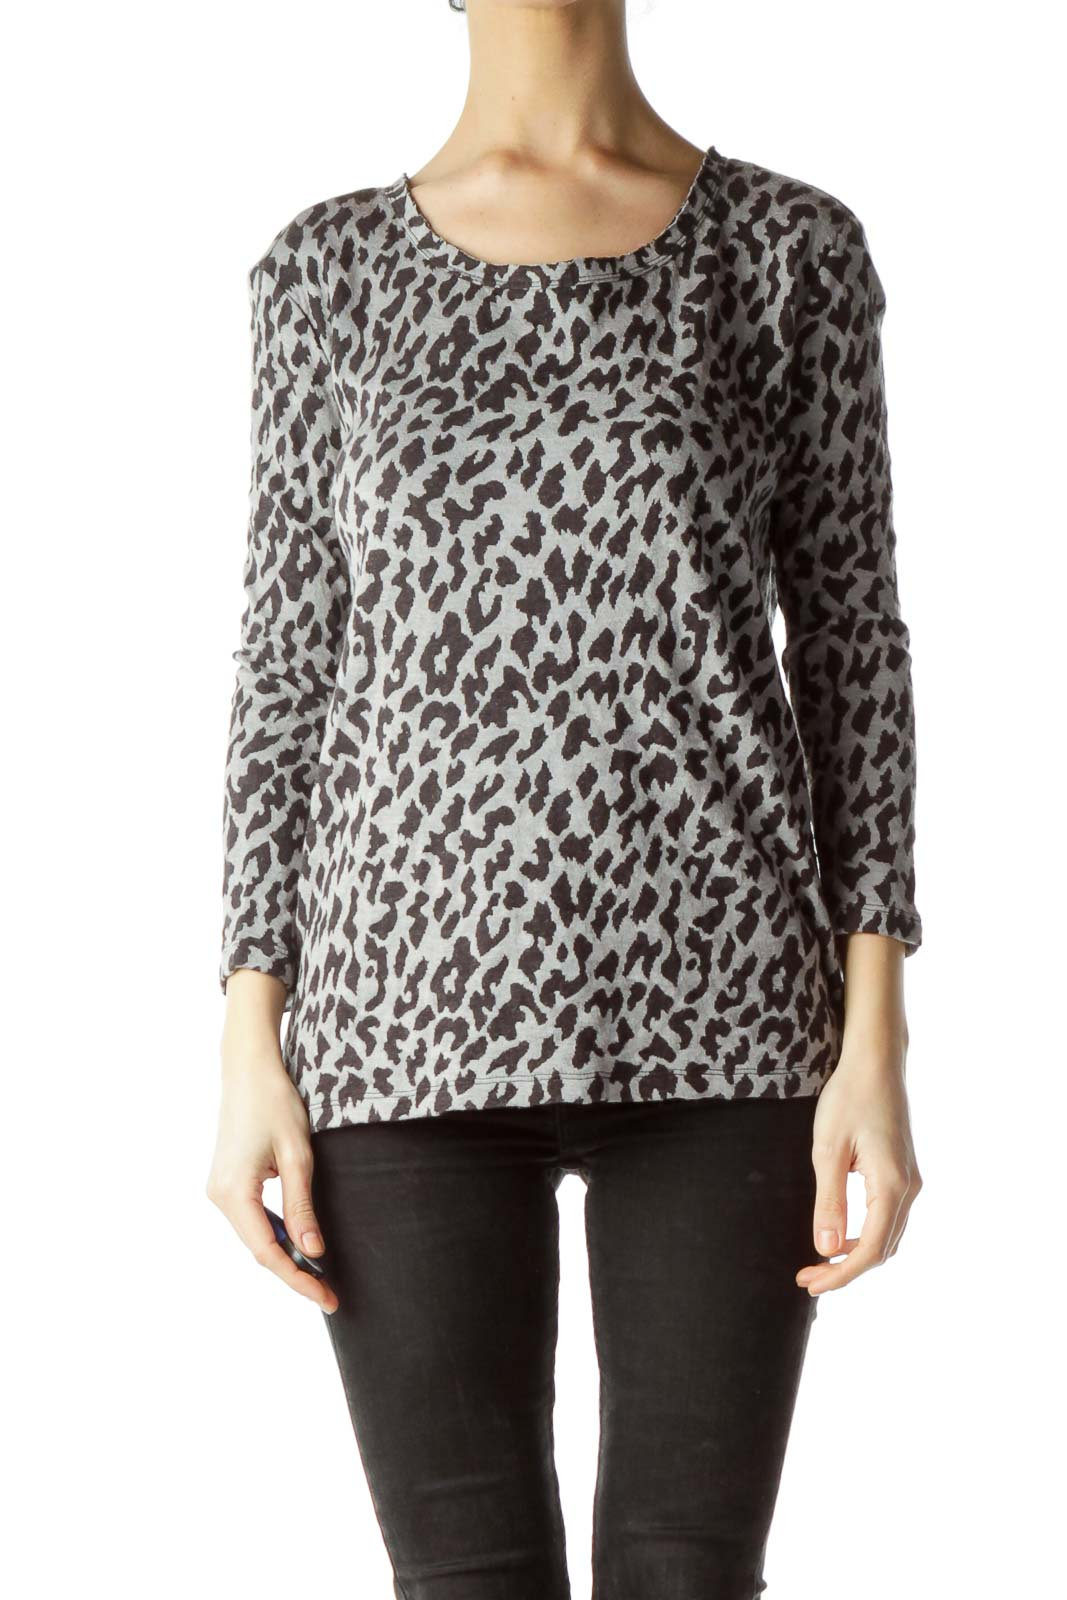 Gray Animal Print Knit Top